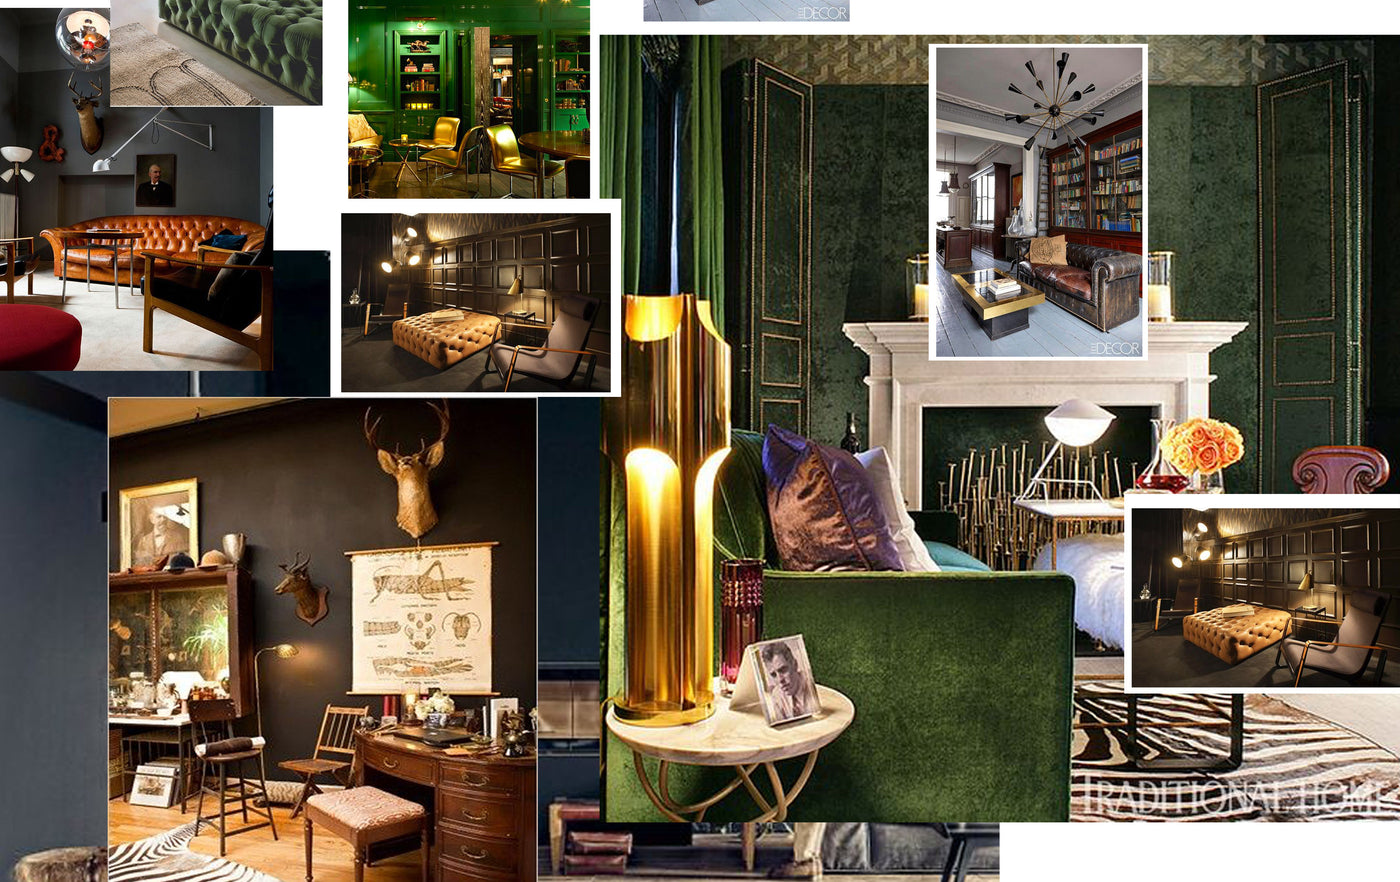 Merveilleux BBC Great Interior Design Challenge: Tissington